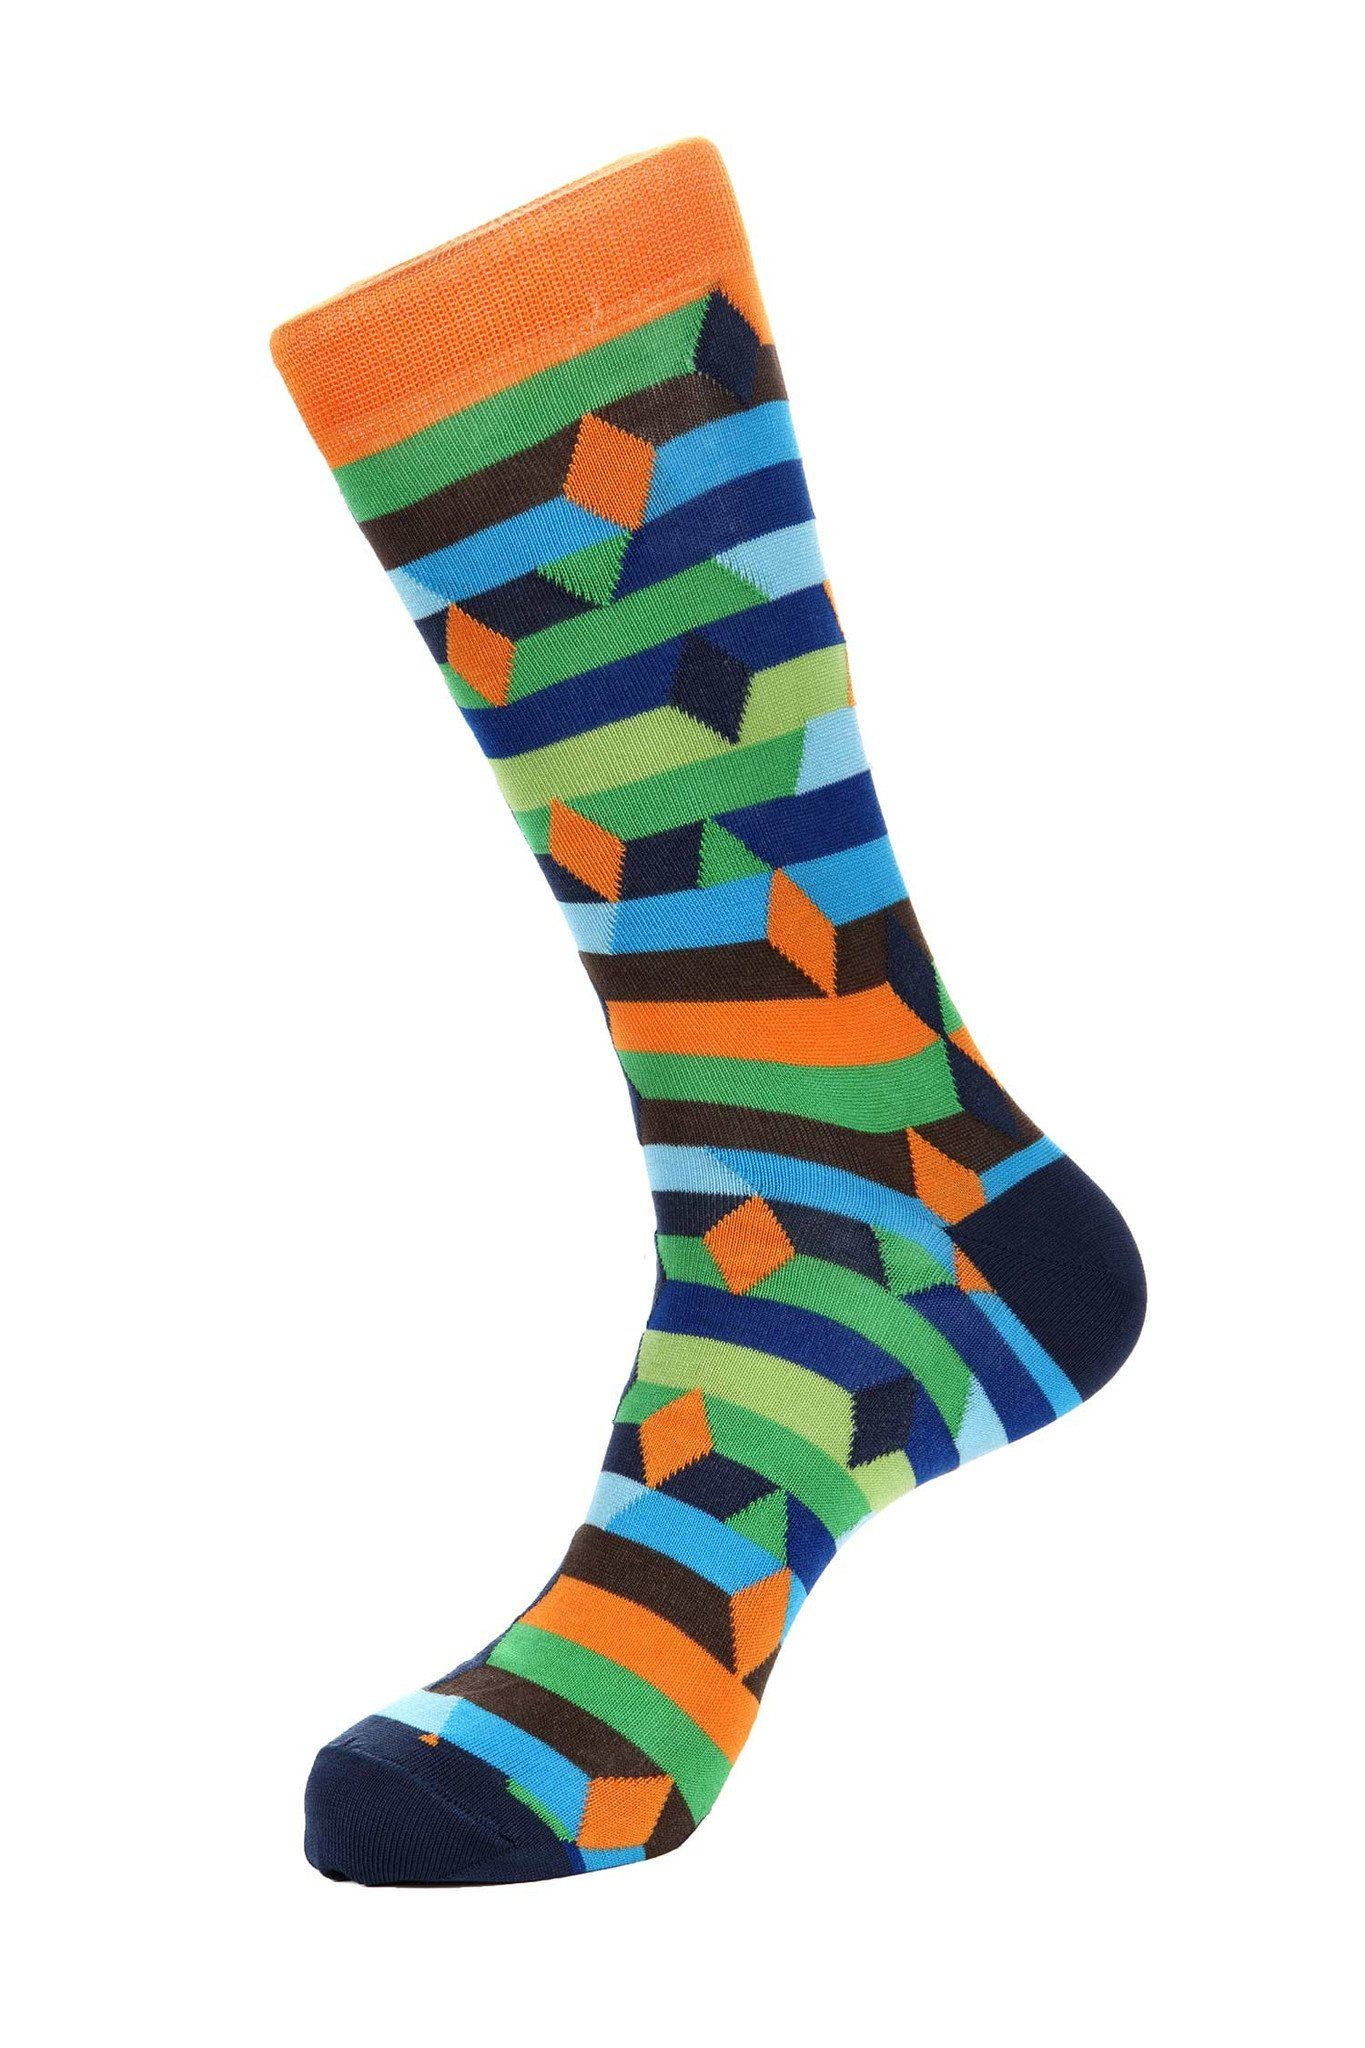 JL-11010-1,socks,Jared Lang, | GentRow.com